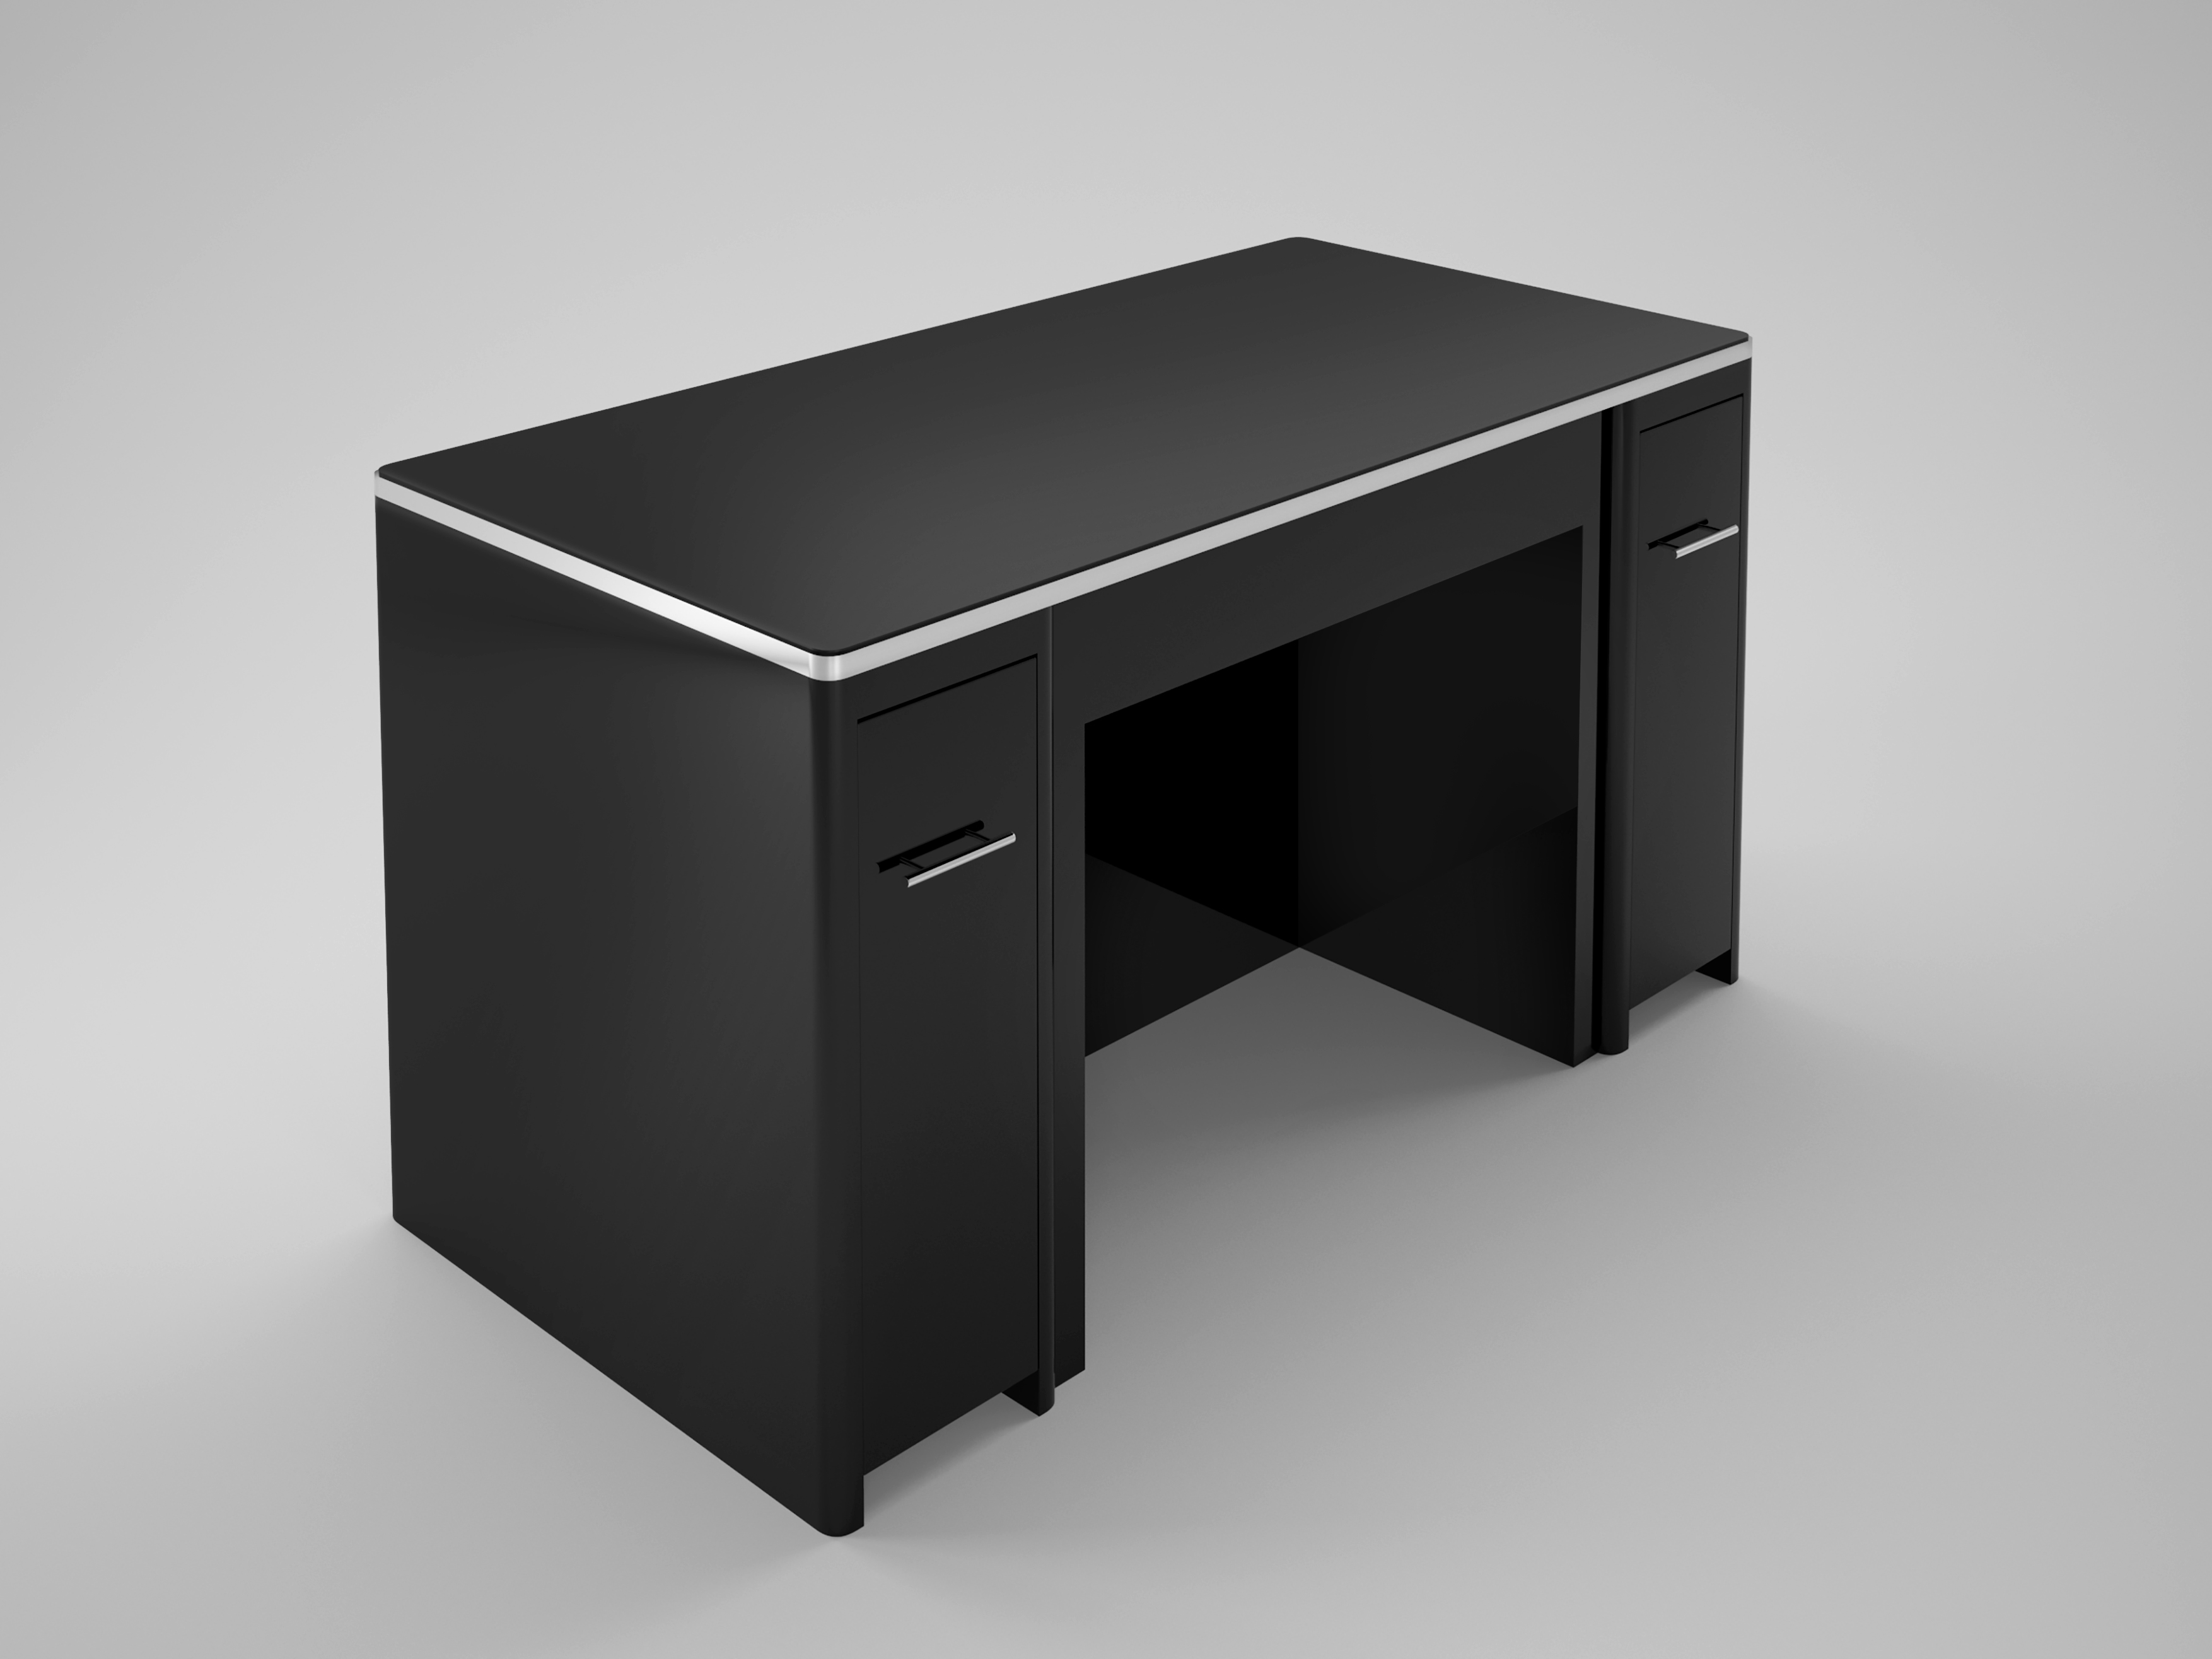 High Gloss Black Desk With Drawer Front